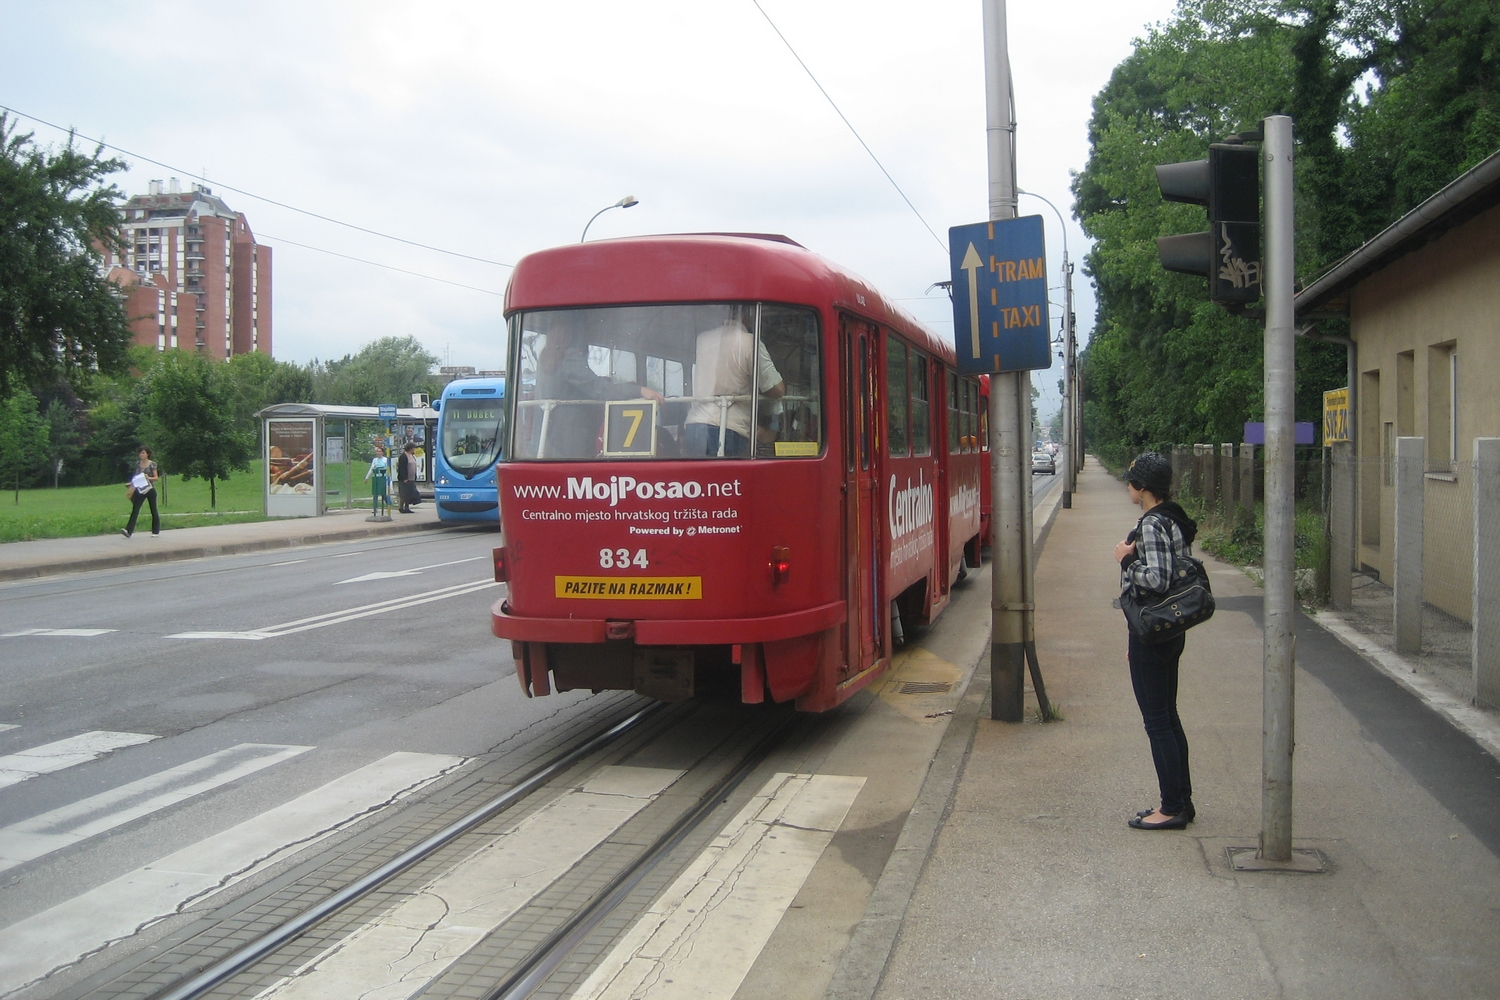 Zagreb railcar 446 on tram line 7 on the road Maksimirska cesta (2008).